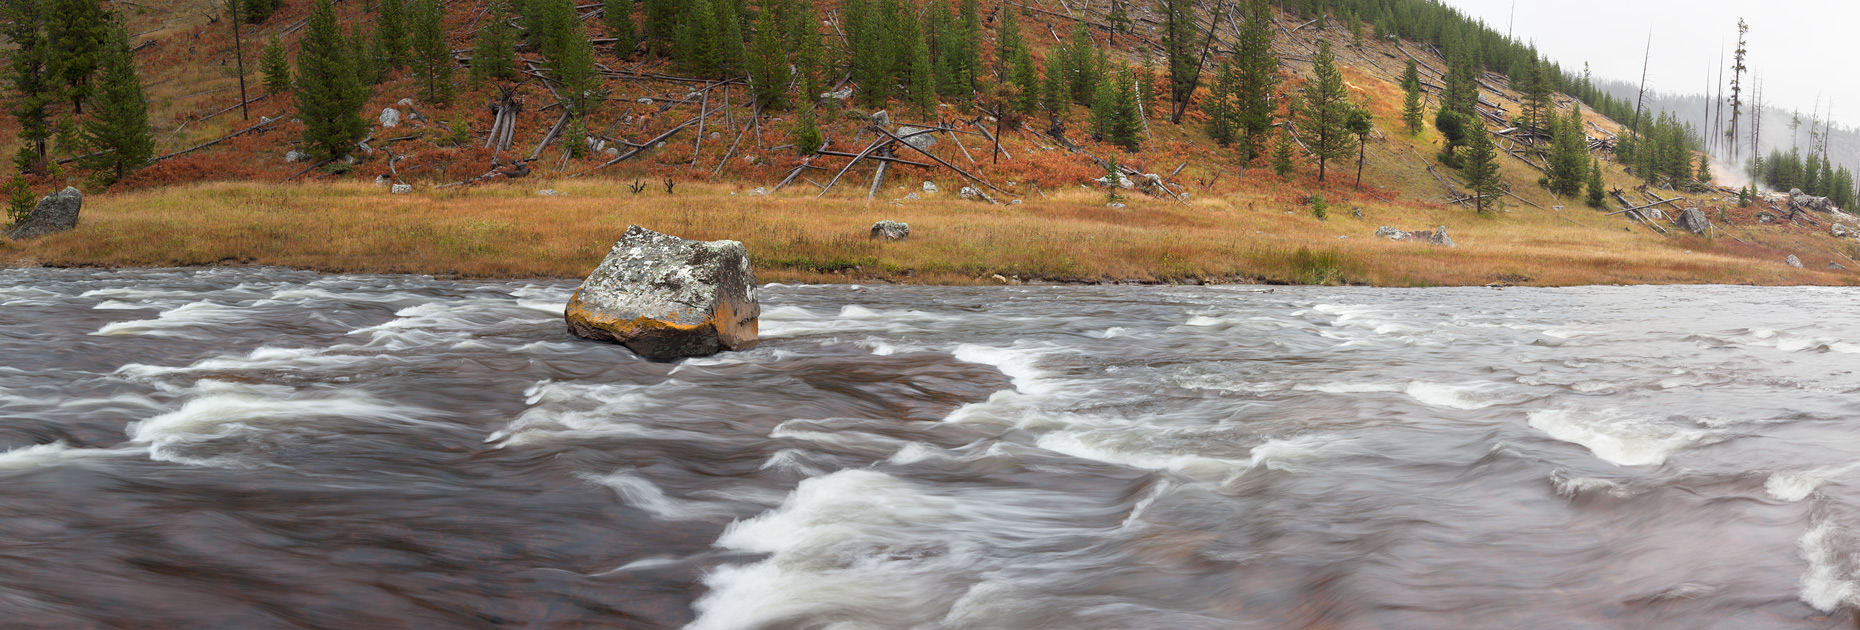 The Gibbon River, Yellowstone National Park